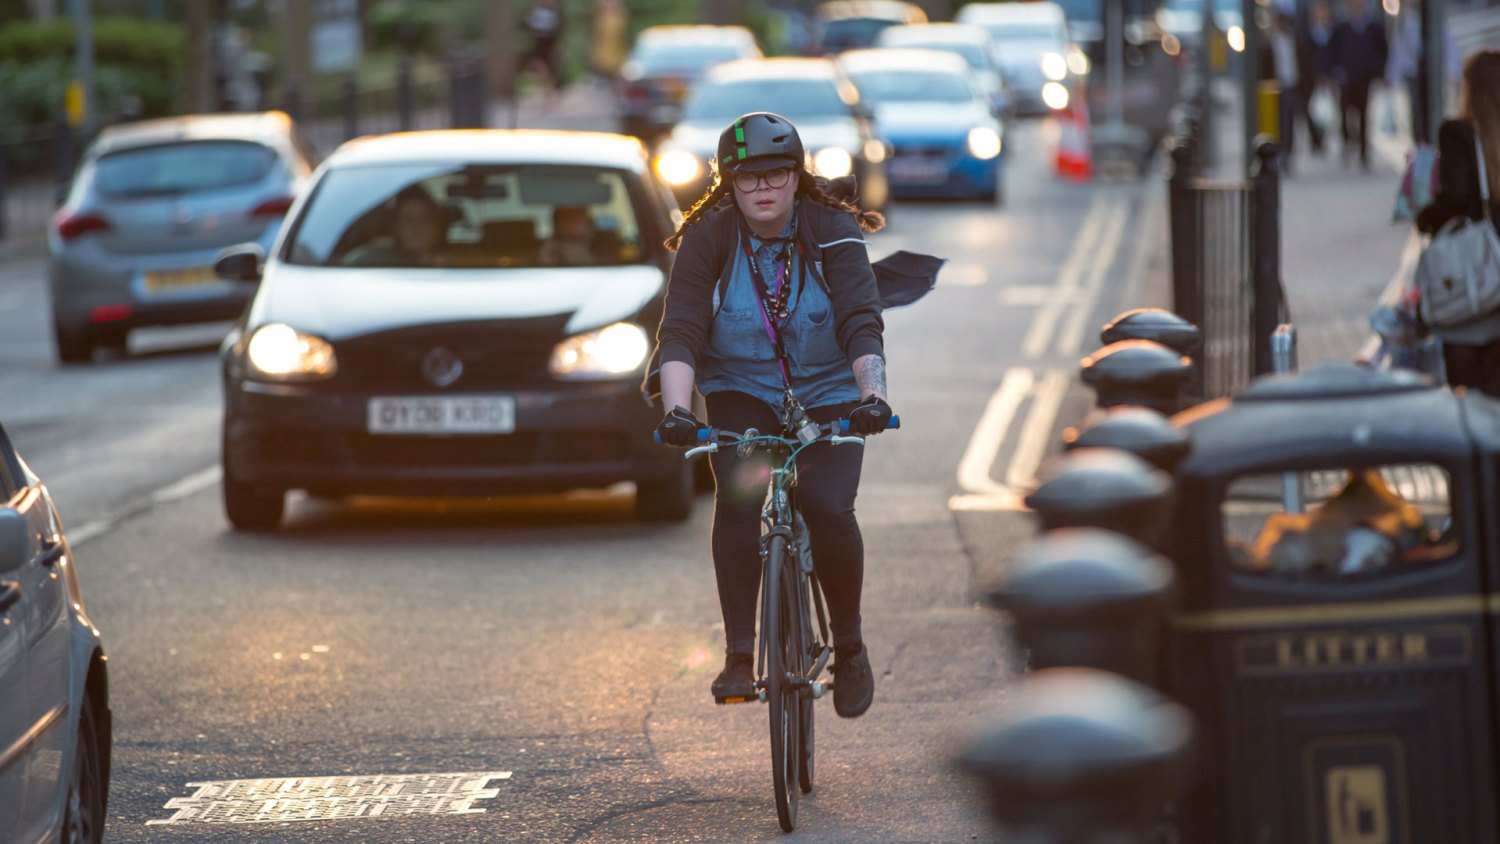 Cycling in London